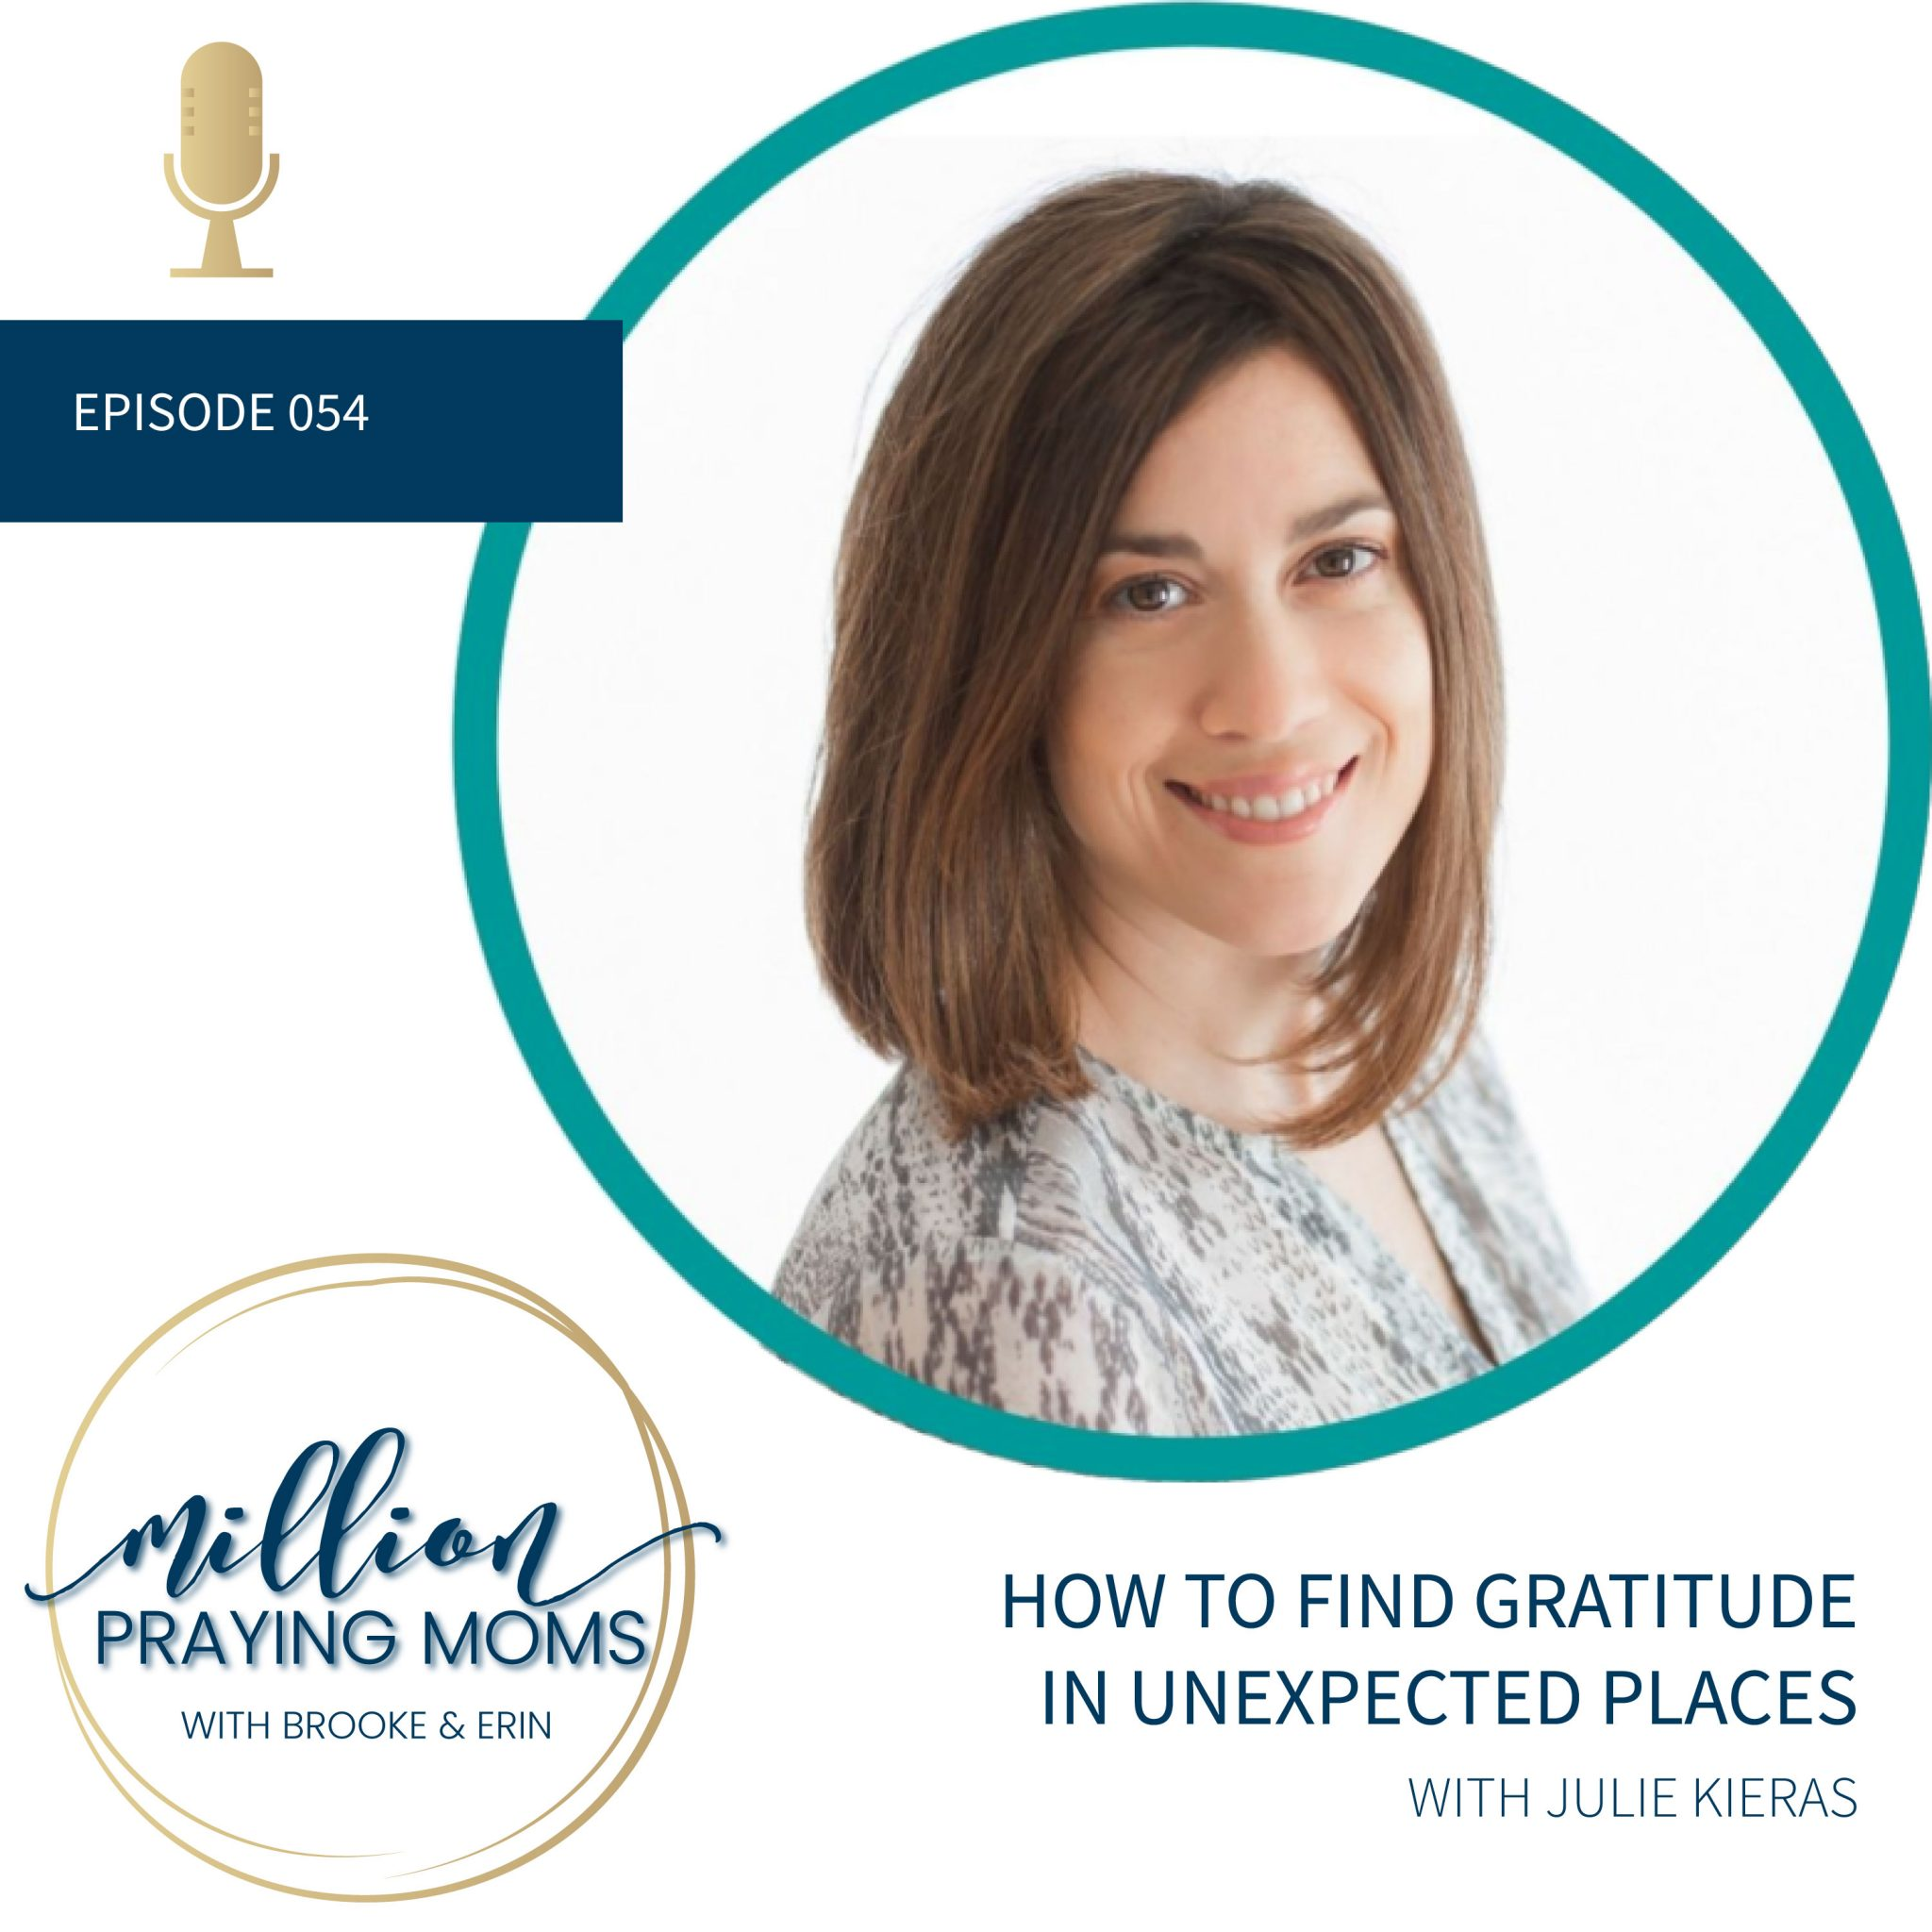 #054: How to Find Gratitude in Unexpected Places